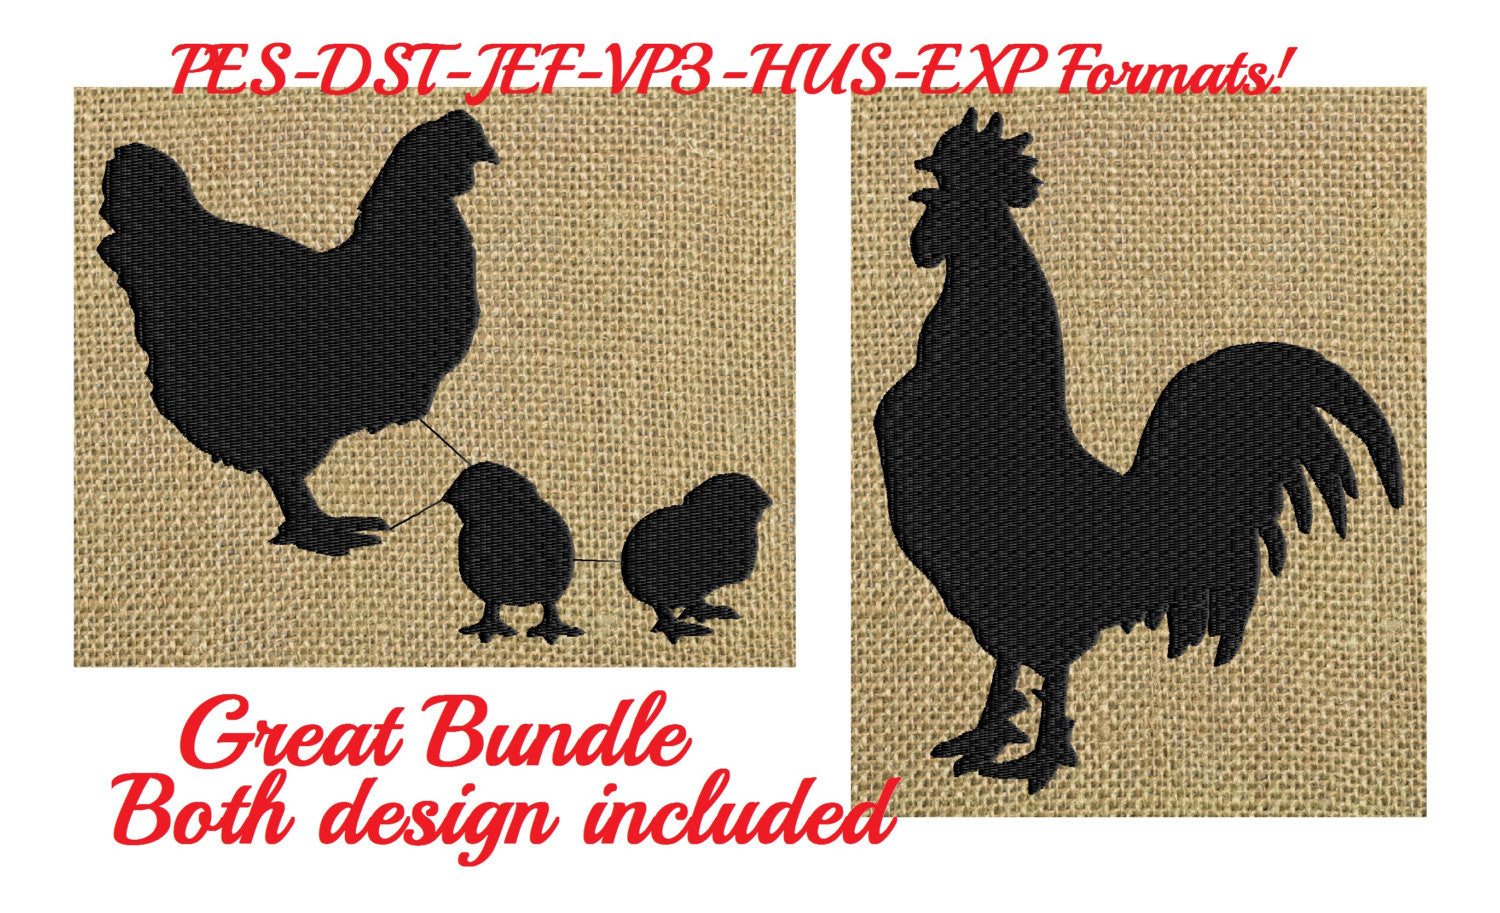 Hen Rooster & baby chicks Silhouette - Embroidery Design Embroidery DESIGN FILE bundle - animals